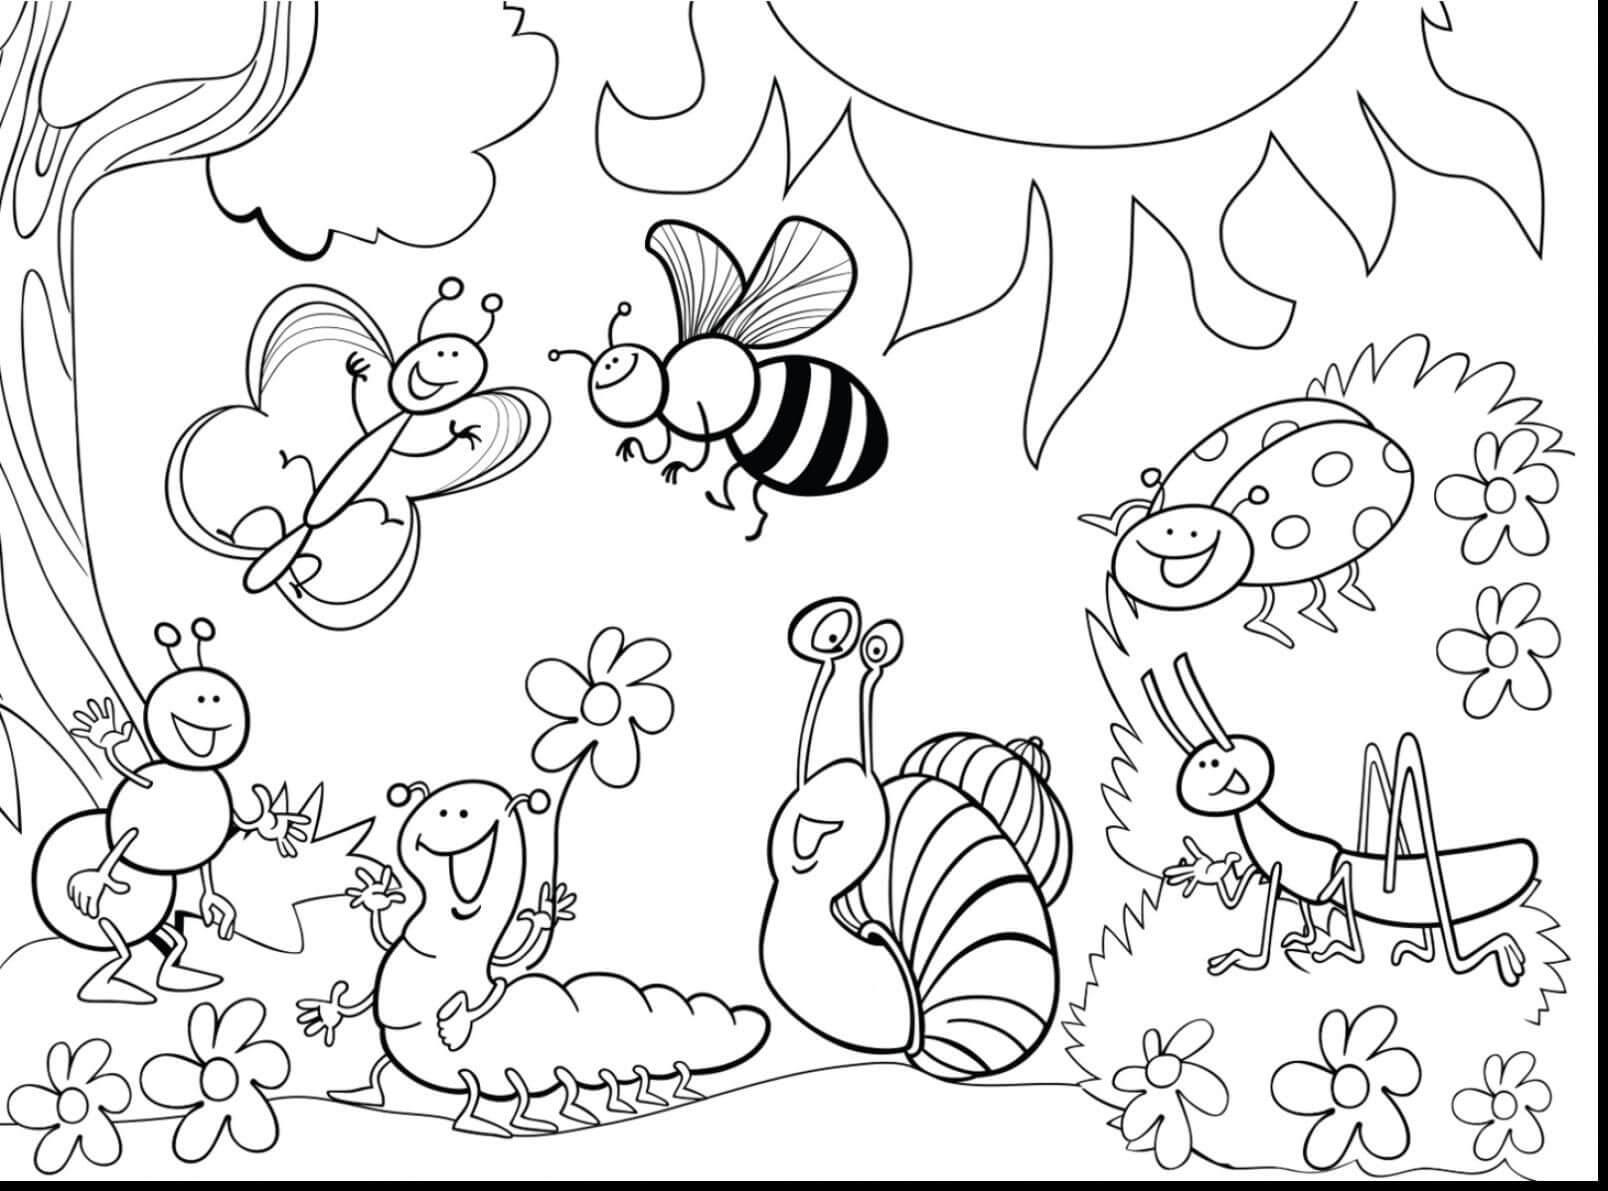 HoneyBee – Insect Coloring Pages – coloring.rocks!